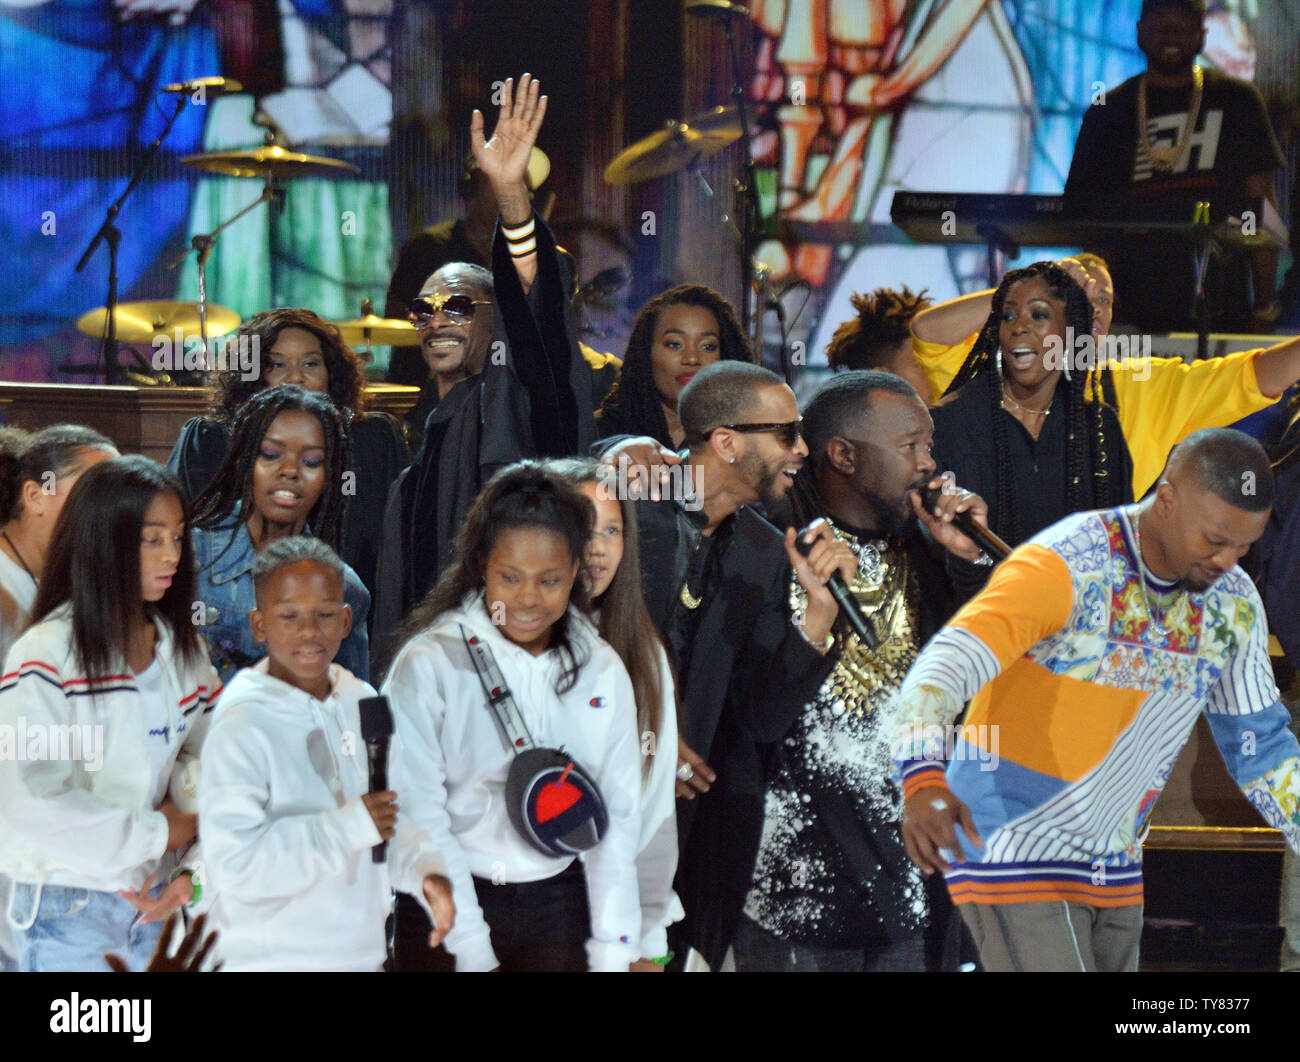 Snoop Dogg Entertainment Stock Photos & Snoop Dogg